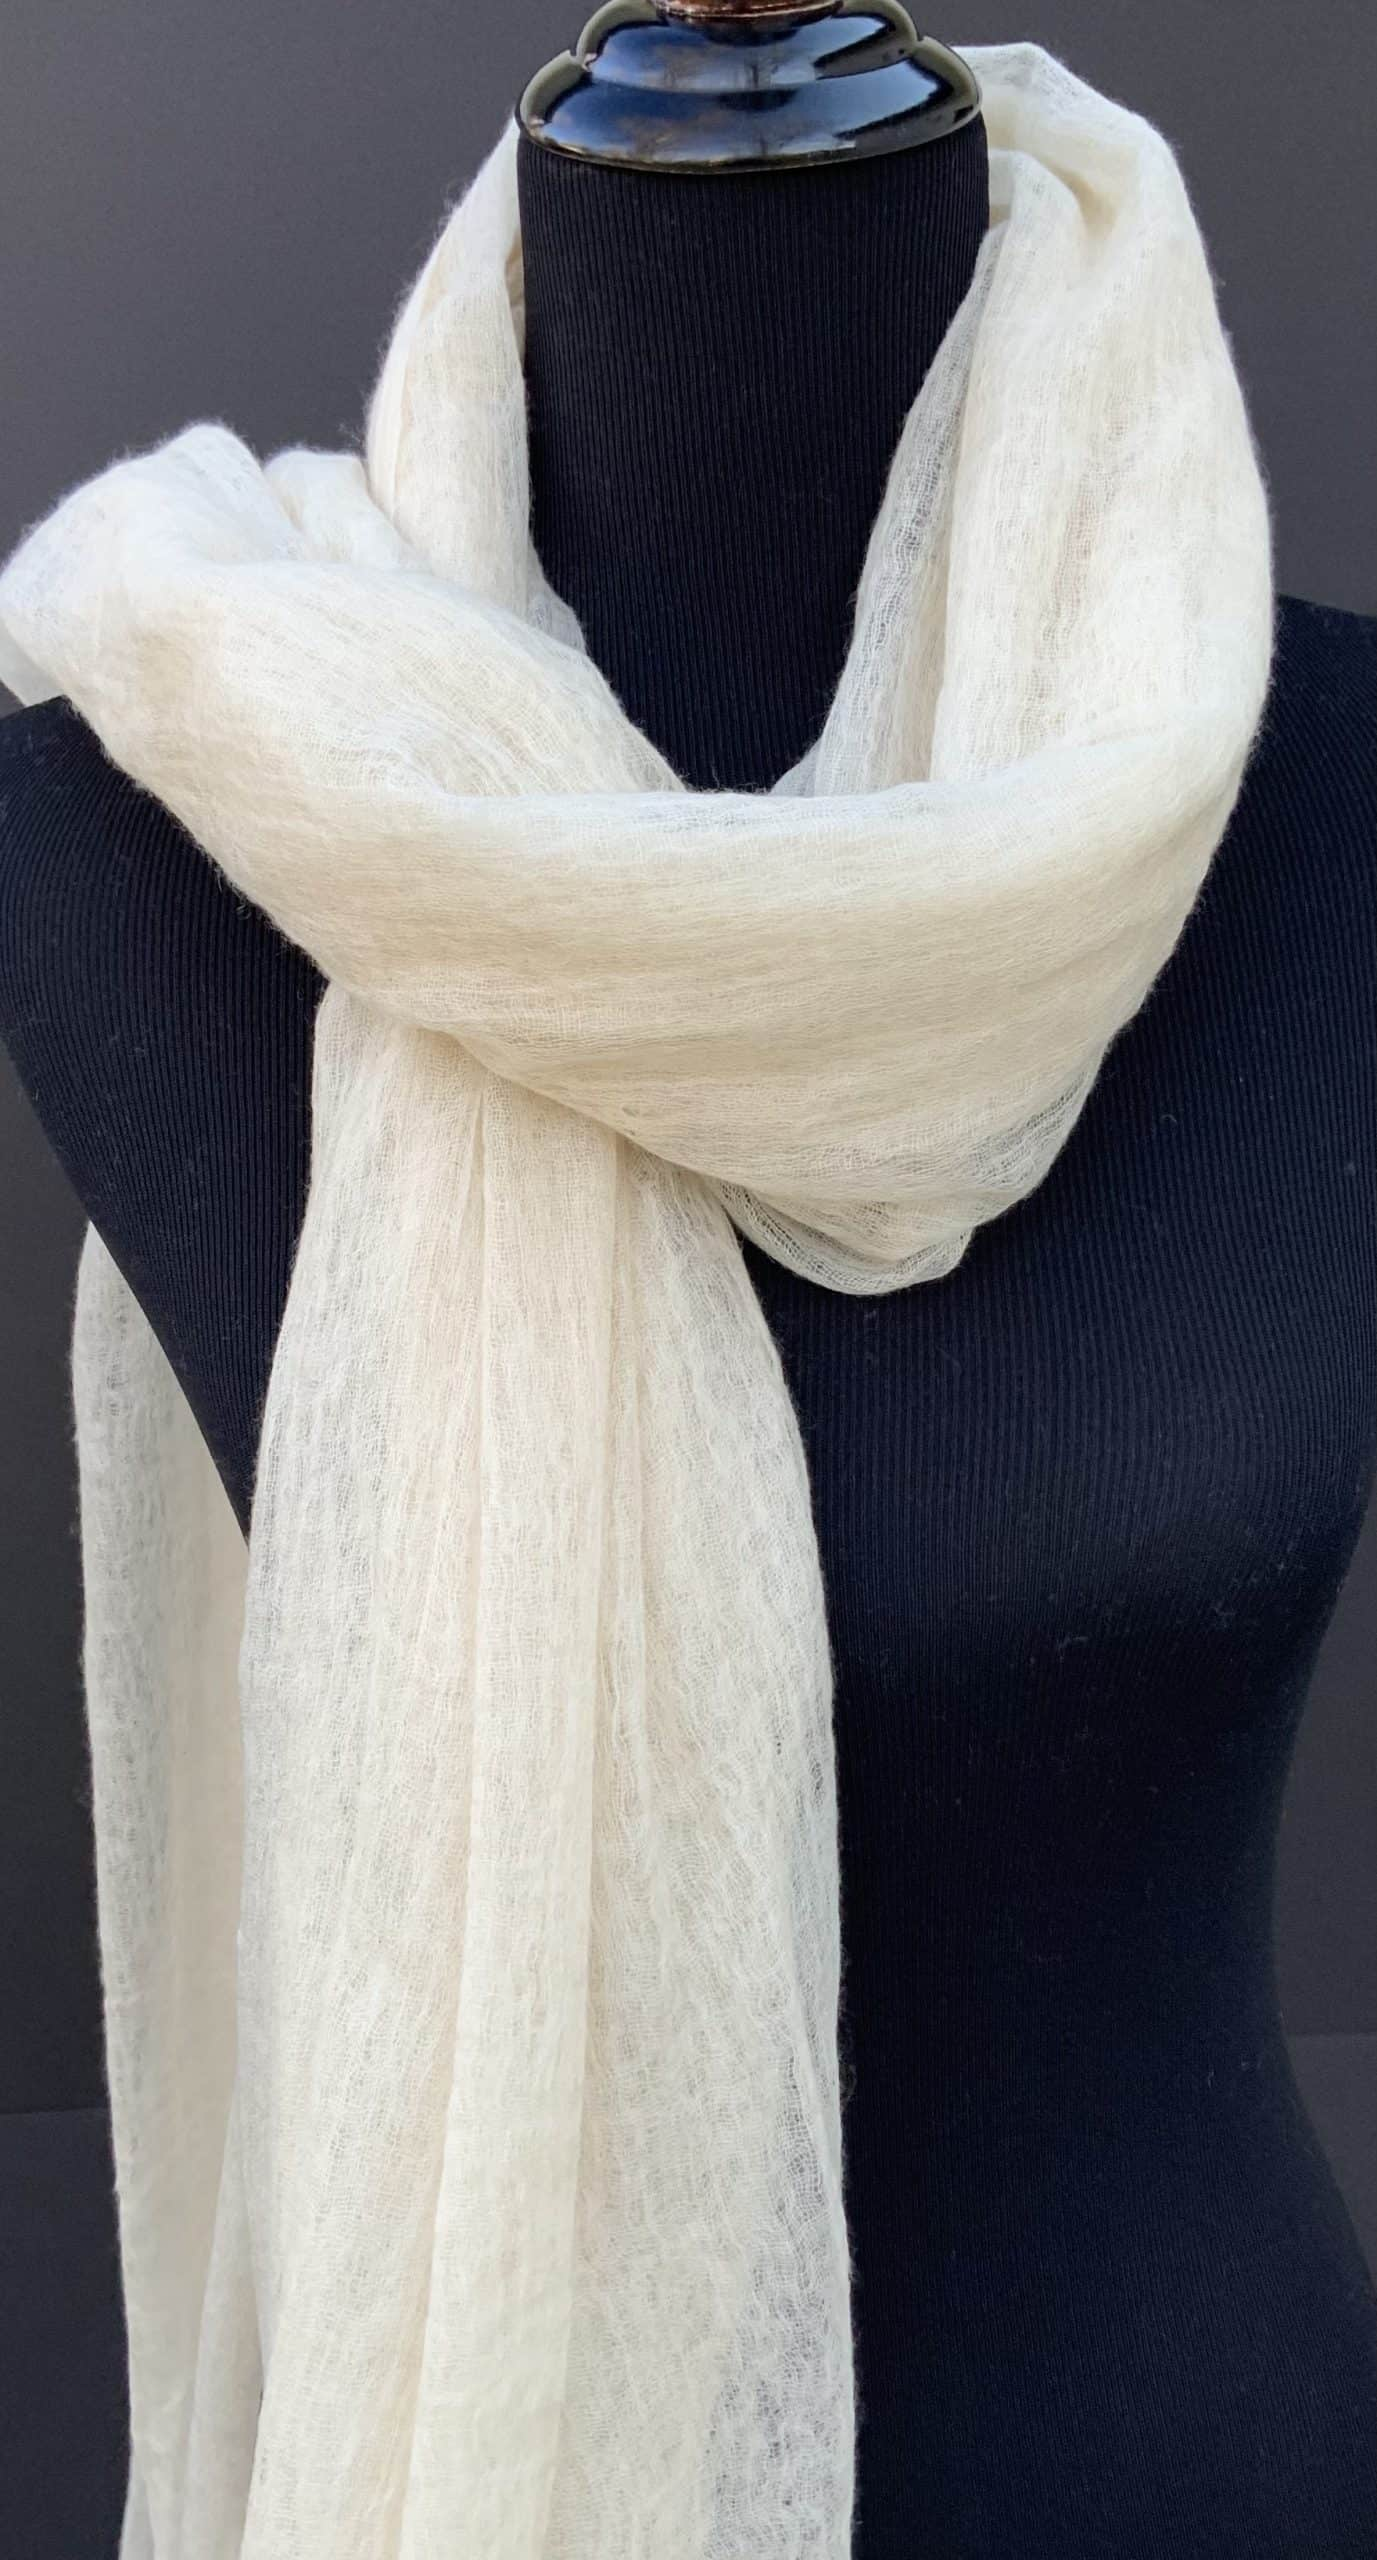 the finest cashmere